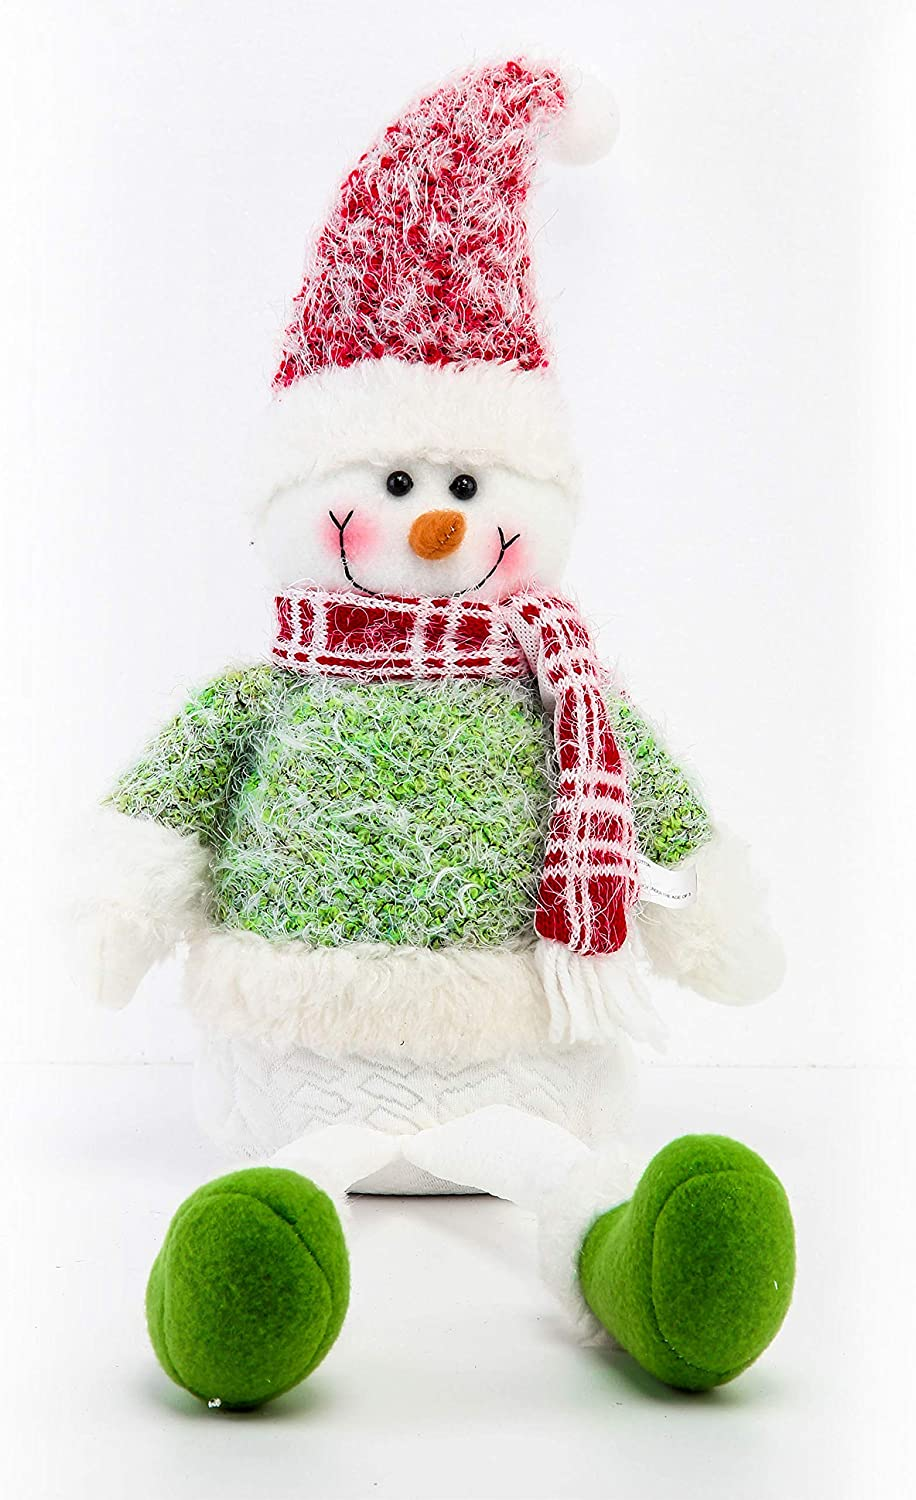 Costyleen Christmas Snowman Figure Plush Dolls Toy Xmas Decorations Ornaments Home Indoor Table Decor Party Tree Hanging Toys Gifts Collectible Festival Figurine Green 28.5 inches